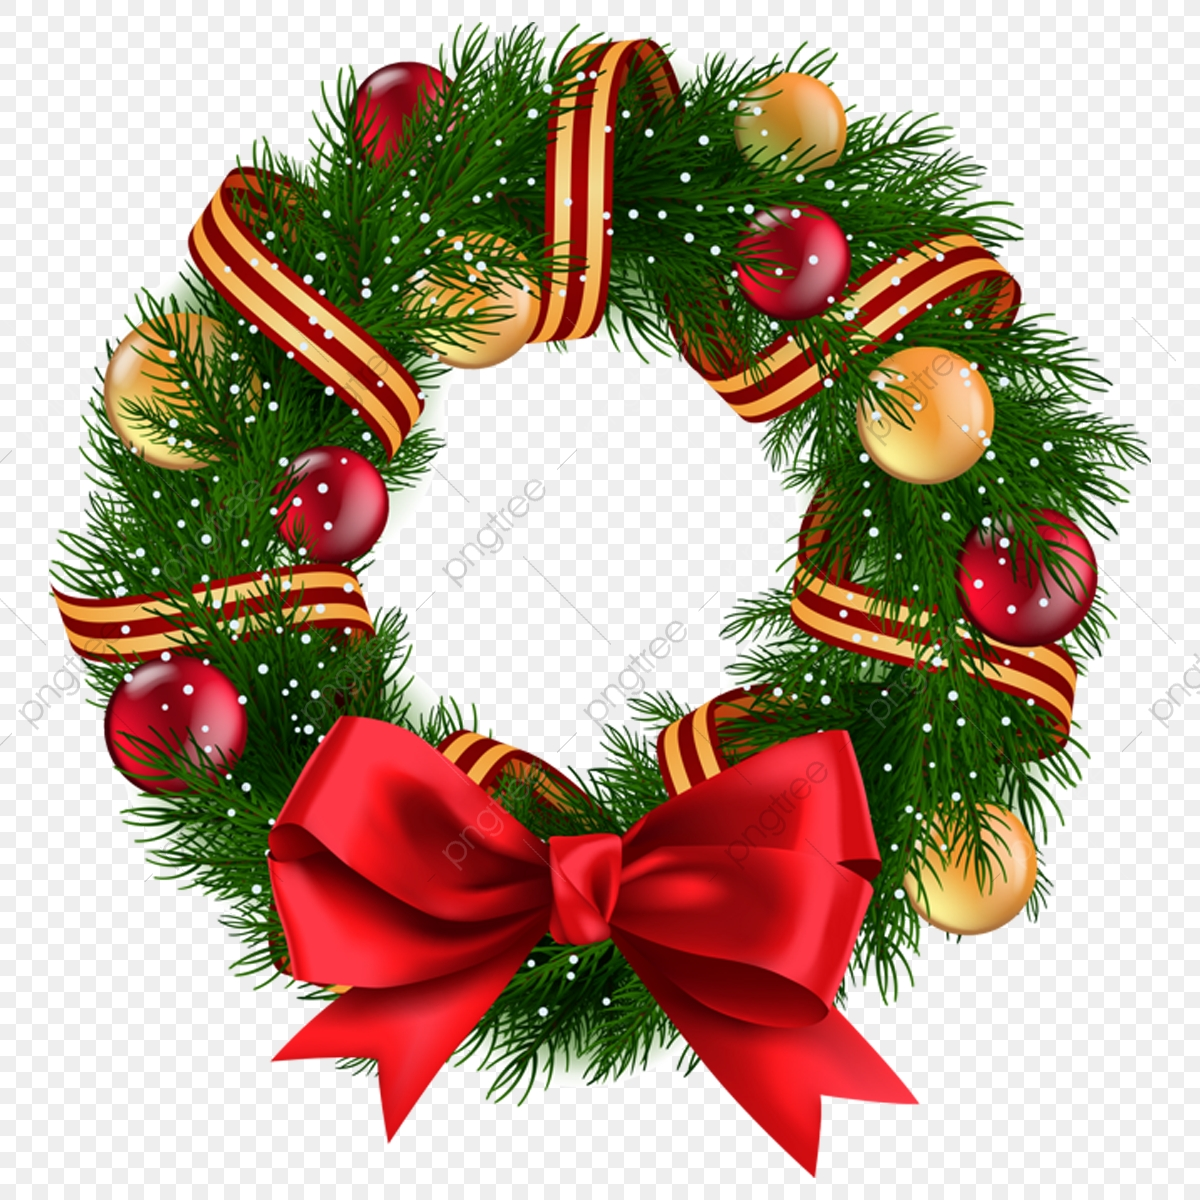 Christmas Wreath Vector.Christmas Wreath Christmas Wreath Png Christmas Wreath